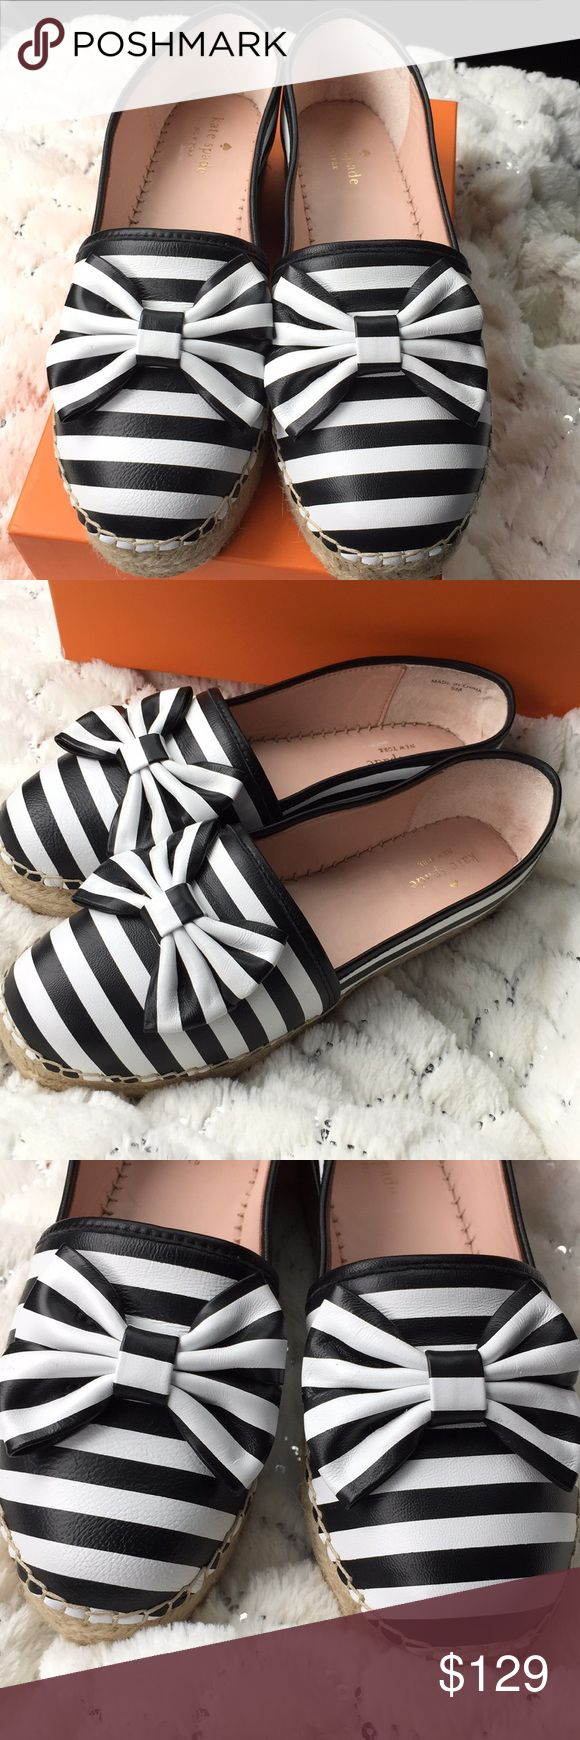 """100% Authentic Kate Spade black and white Nappa. Brand New! KATE SPADE New York.  STYLE: LINDS  Black / White Stripe Nappa Leather Upper  Slip On Bow Espadrille / Loafers  Goldtone kate spade Emblem on Heel  Round Toe  Leather Lining  Padded Insole Leather Liner  1"""" Jute Trimmed Manmade Rubber Sole  Retail Price: $150.00 + TAX  100% Authentic 🚫No trades  🚫No lowball offers  🚫No offers on already discount bundles  ✅reasonable offers are welcome. kate spade Shoes Flats & Loafers"""